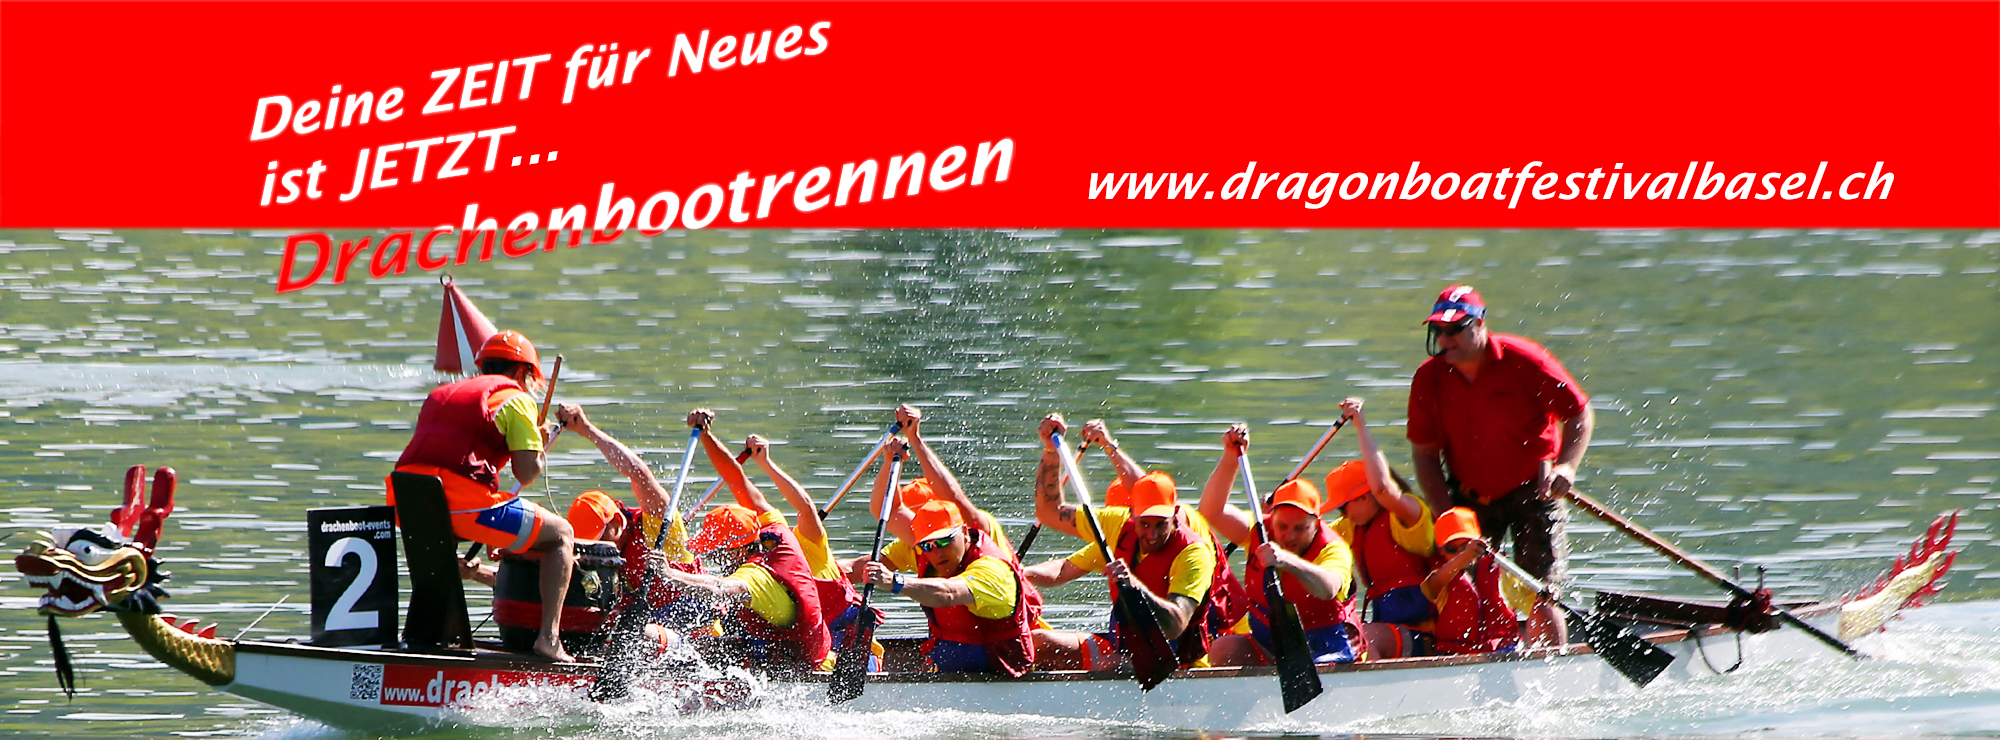 DRAGONBOAT FESTIVAL BASEL 2016 - Drachenbootclub beider Basel - SPORTAL BASEL - Powered by JANSEN-GISIGER Communication